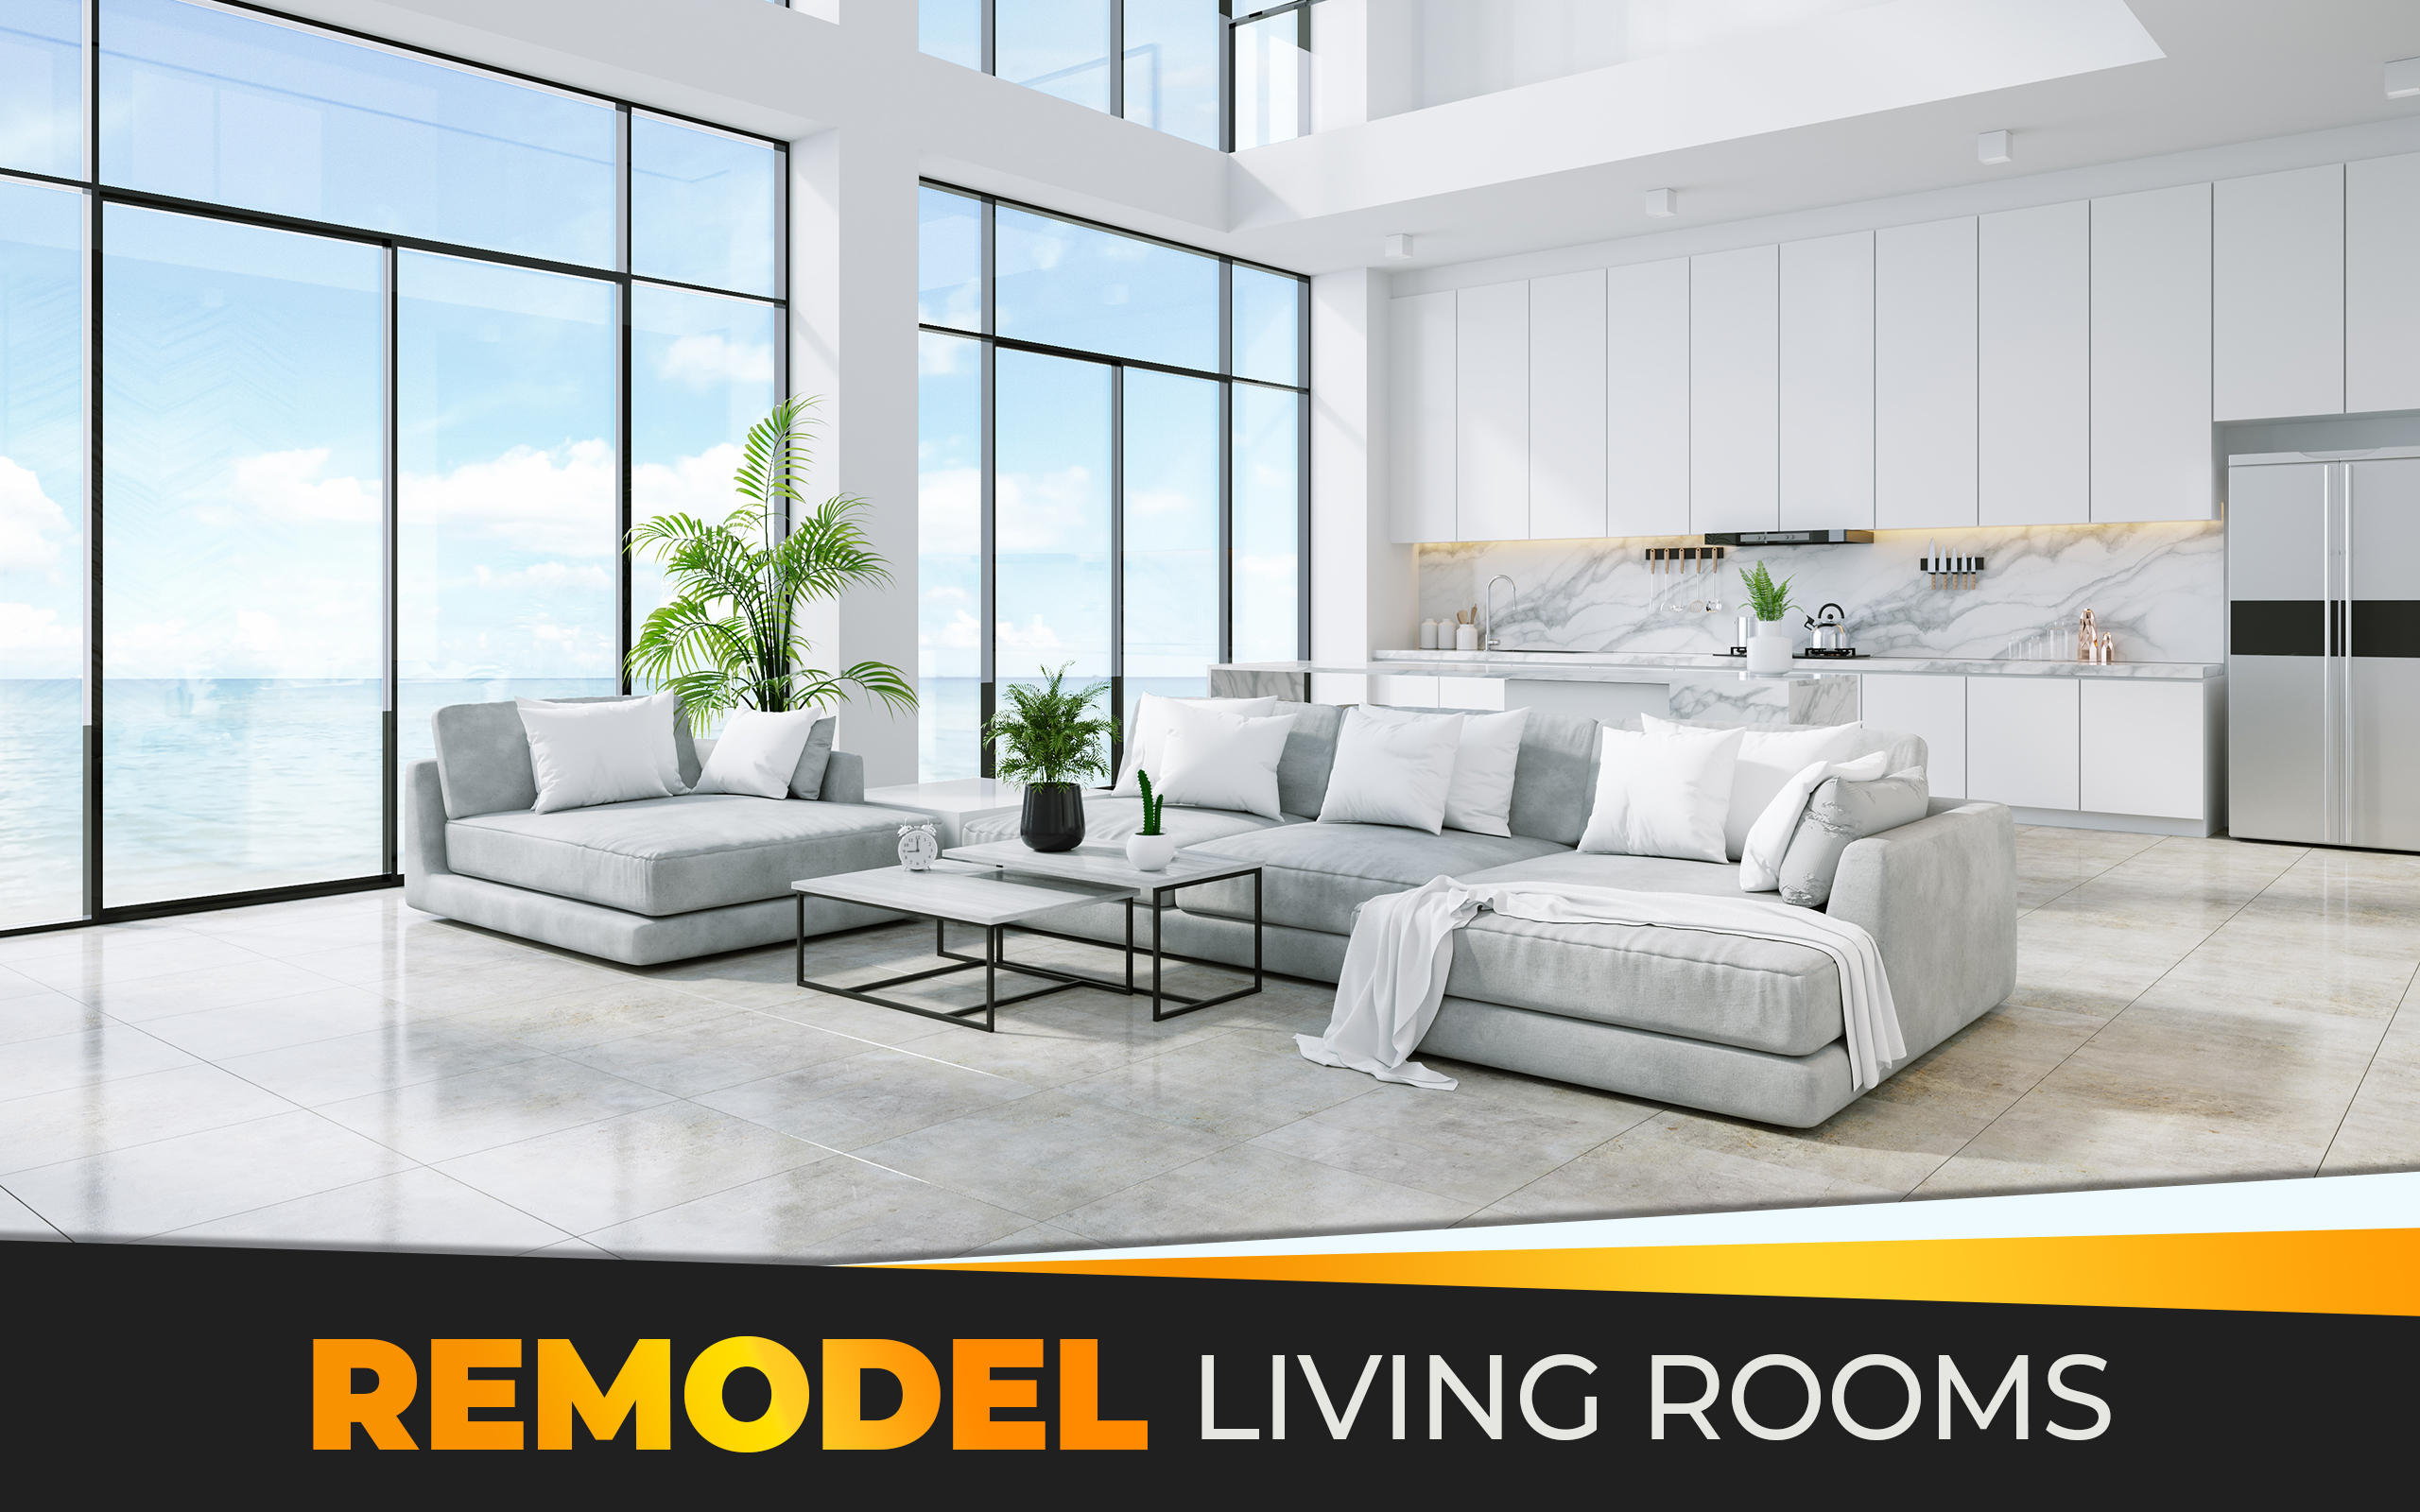 Amazon Com Home Design Dreams Design Makeover Decorate Build Create Your Dream House Games Appstore For Android